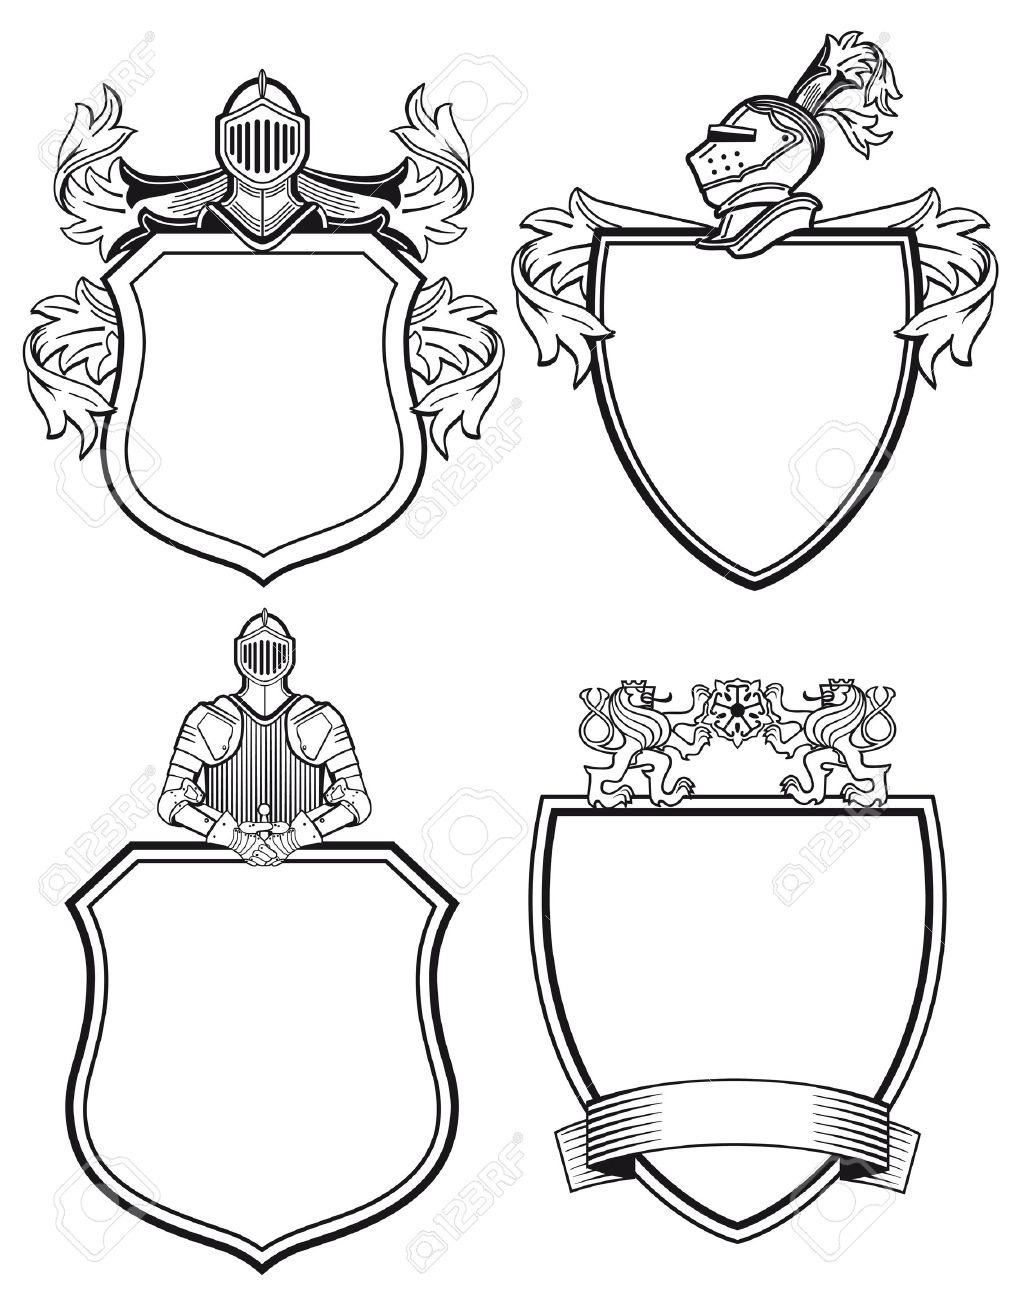 knight shields and crests royalty free cliparts vectors and